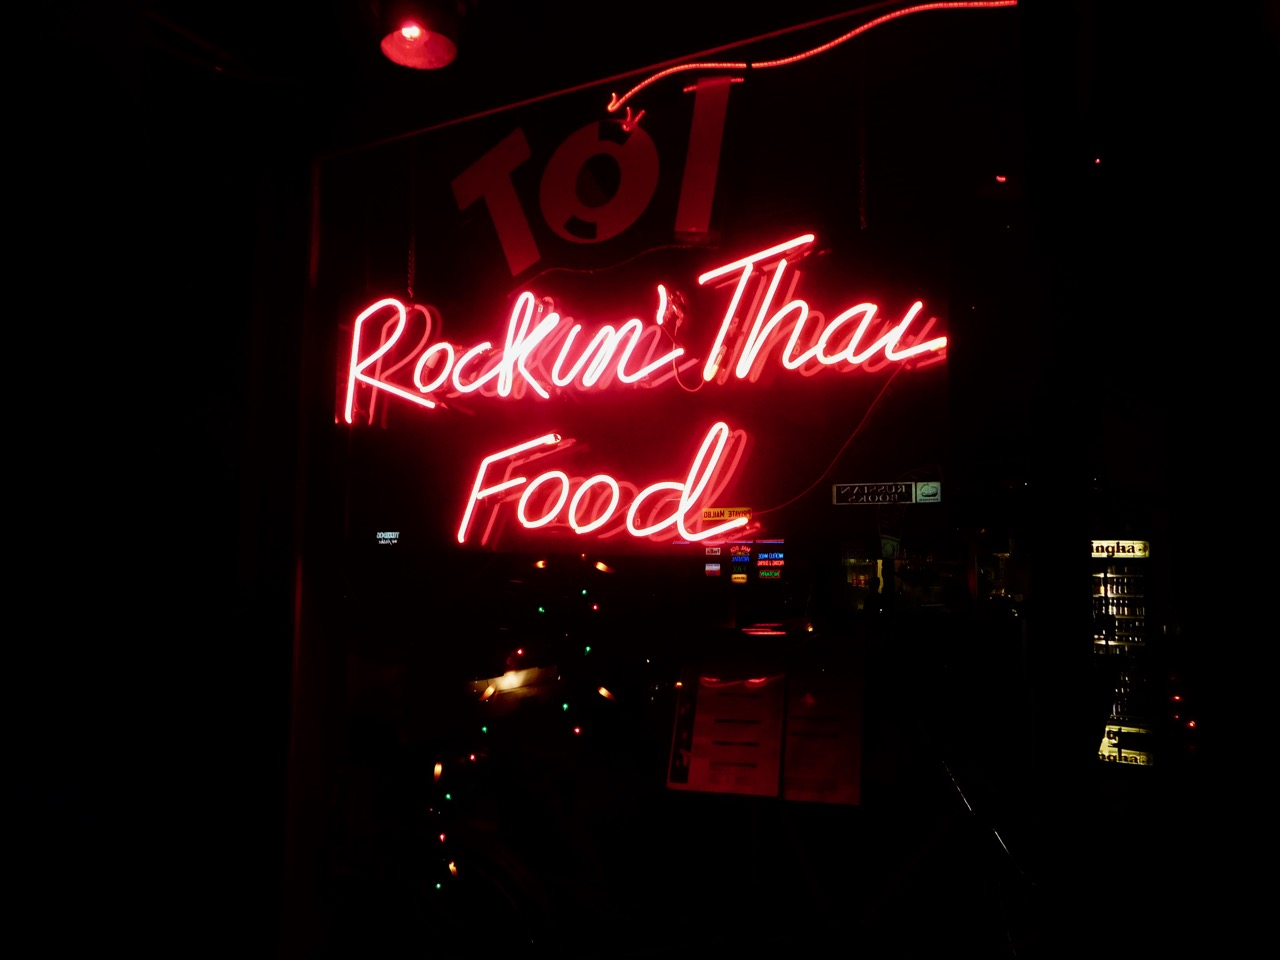 3 Days in L.A. - Toi Thai Food Restaurant (1)